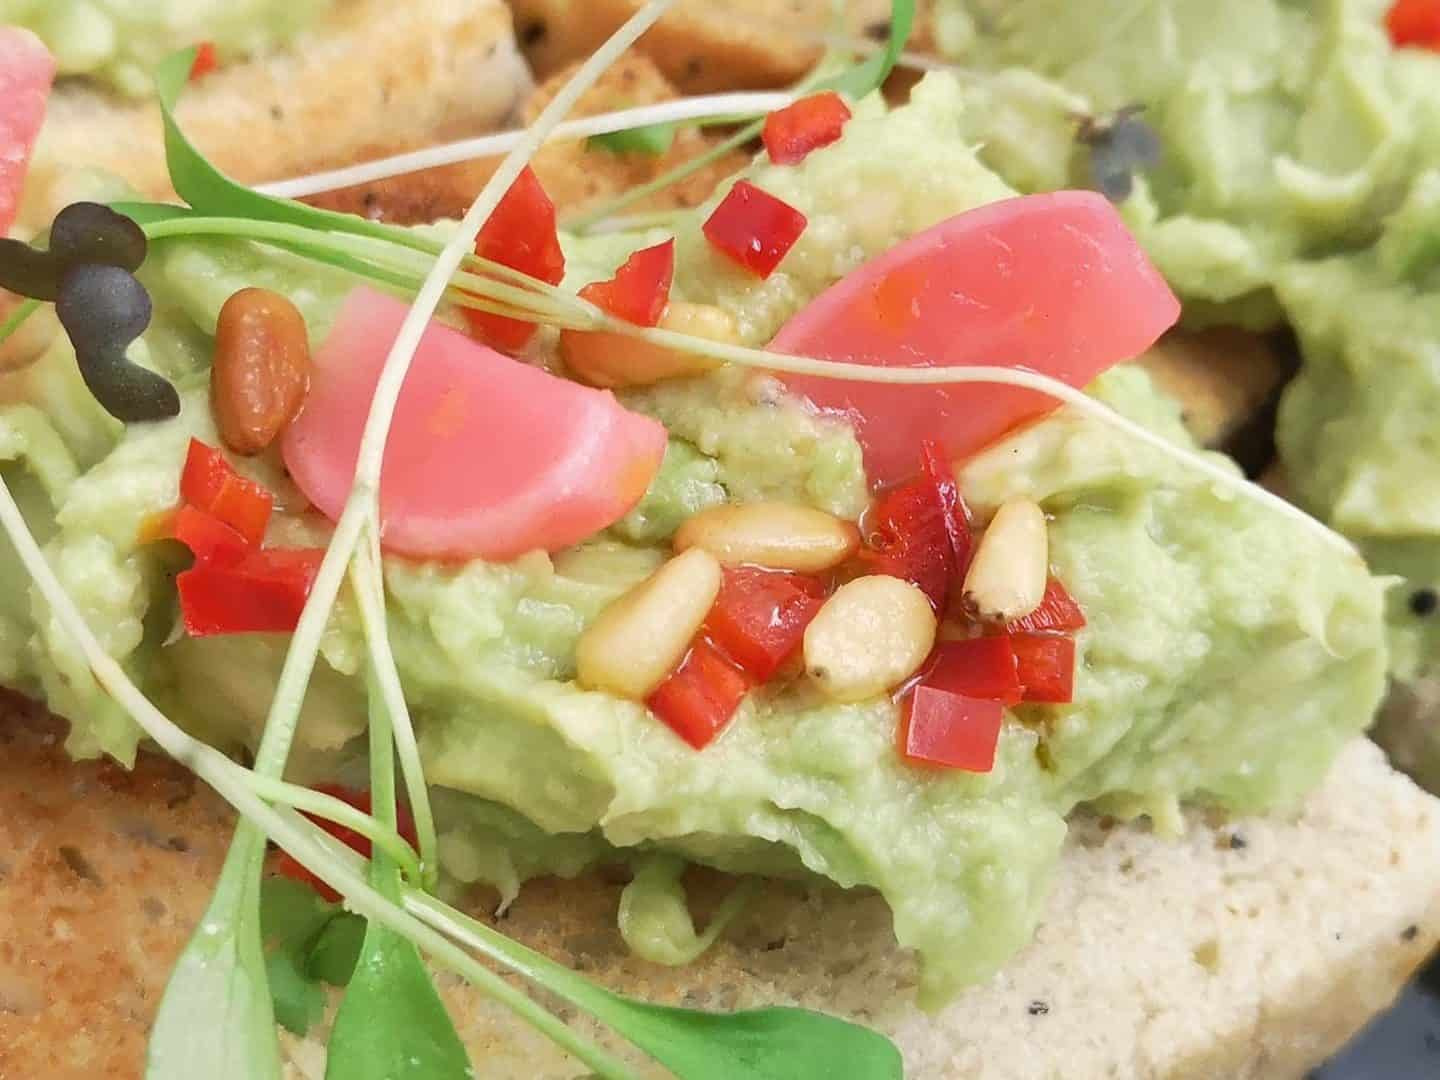 Avocado smash recipe inspiration for Veganuary